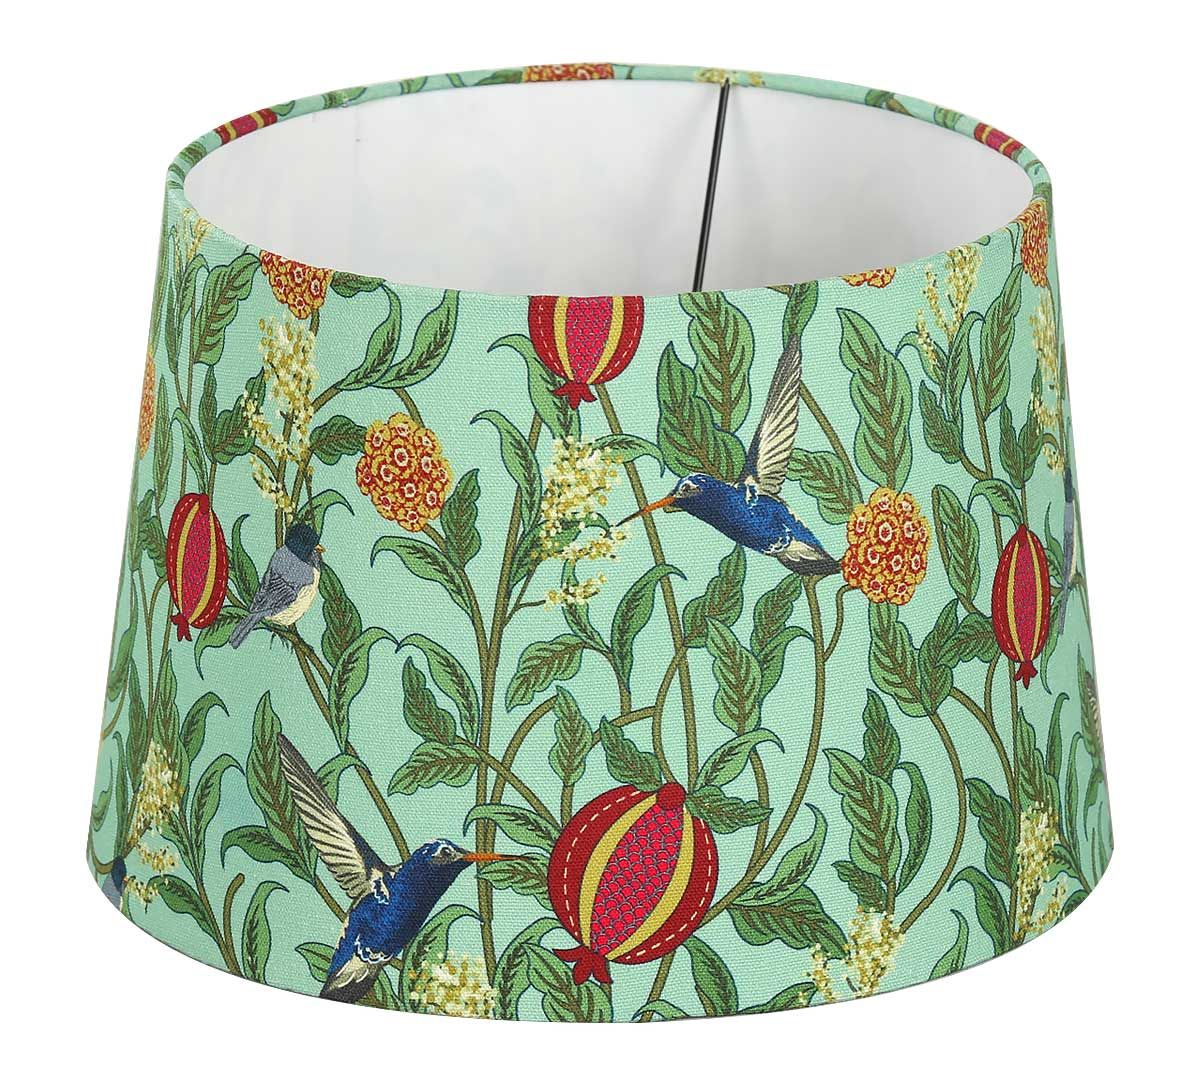 India Circus Flights of Vivers Conical Lamp Shade